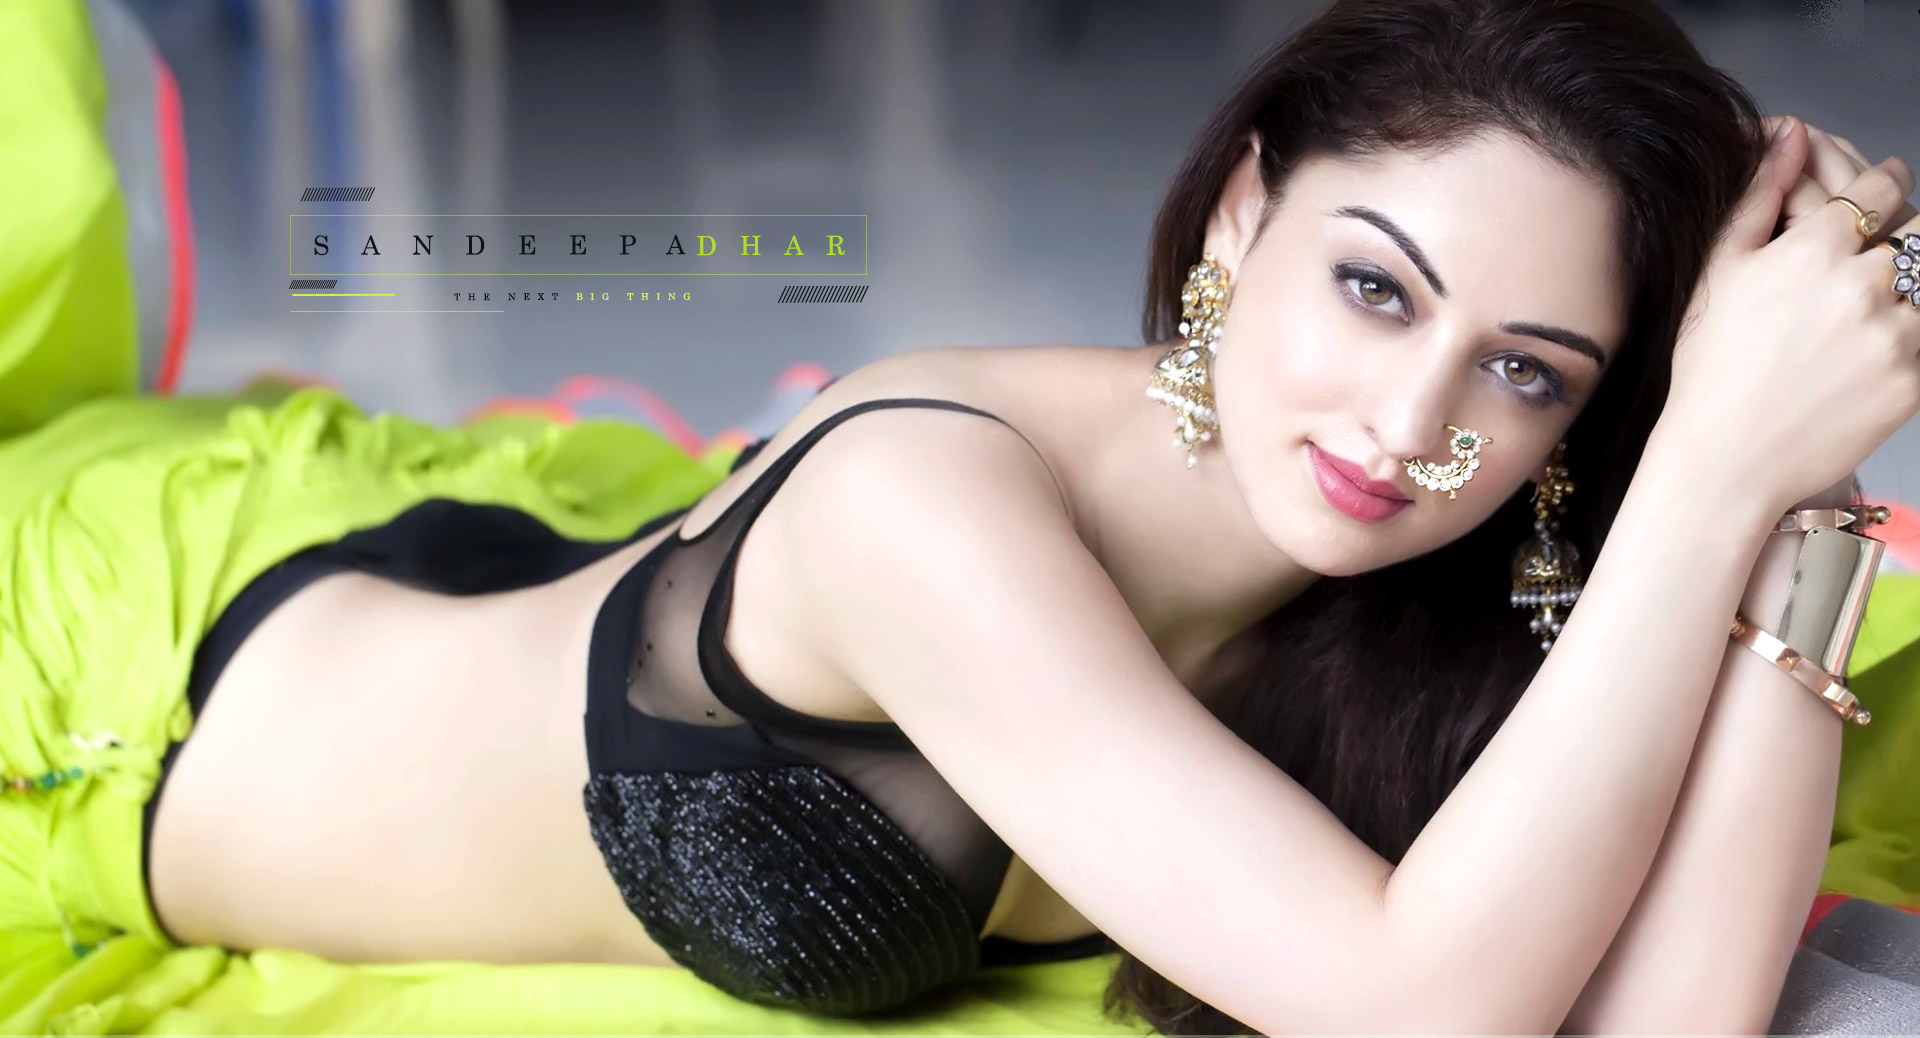 Sandeepa Dhar hot and sexy topless images